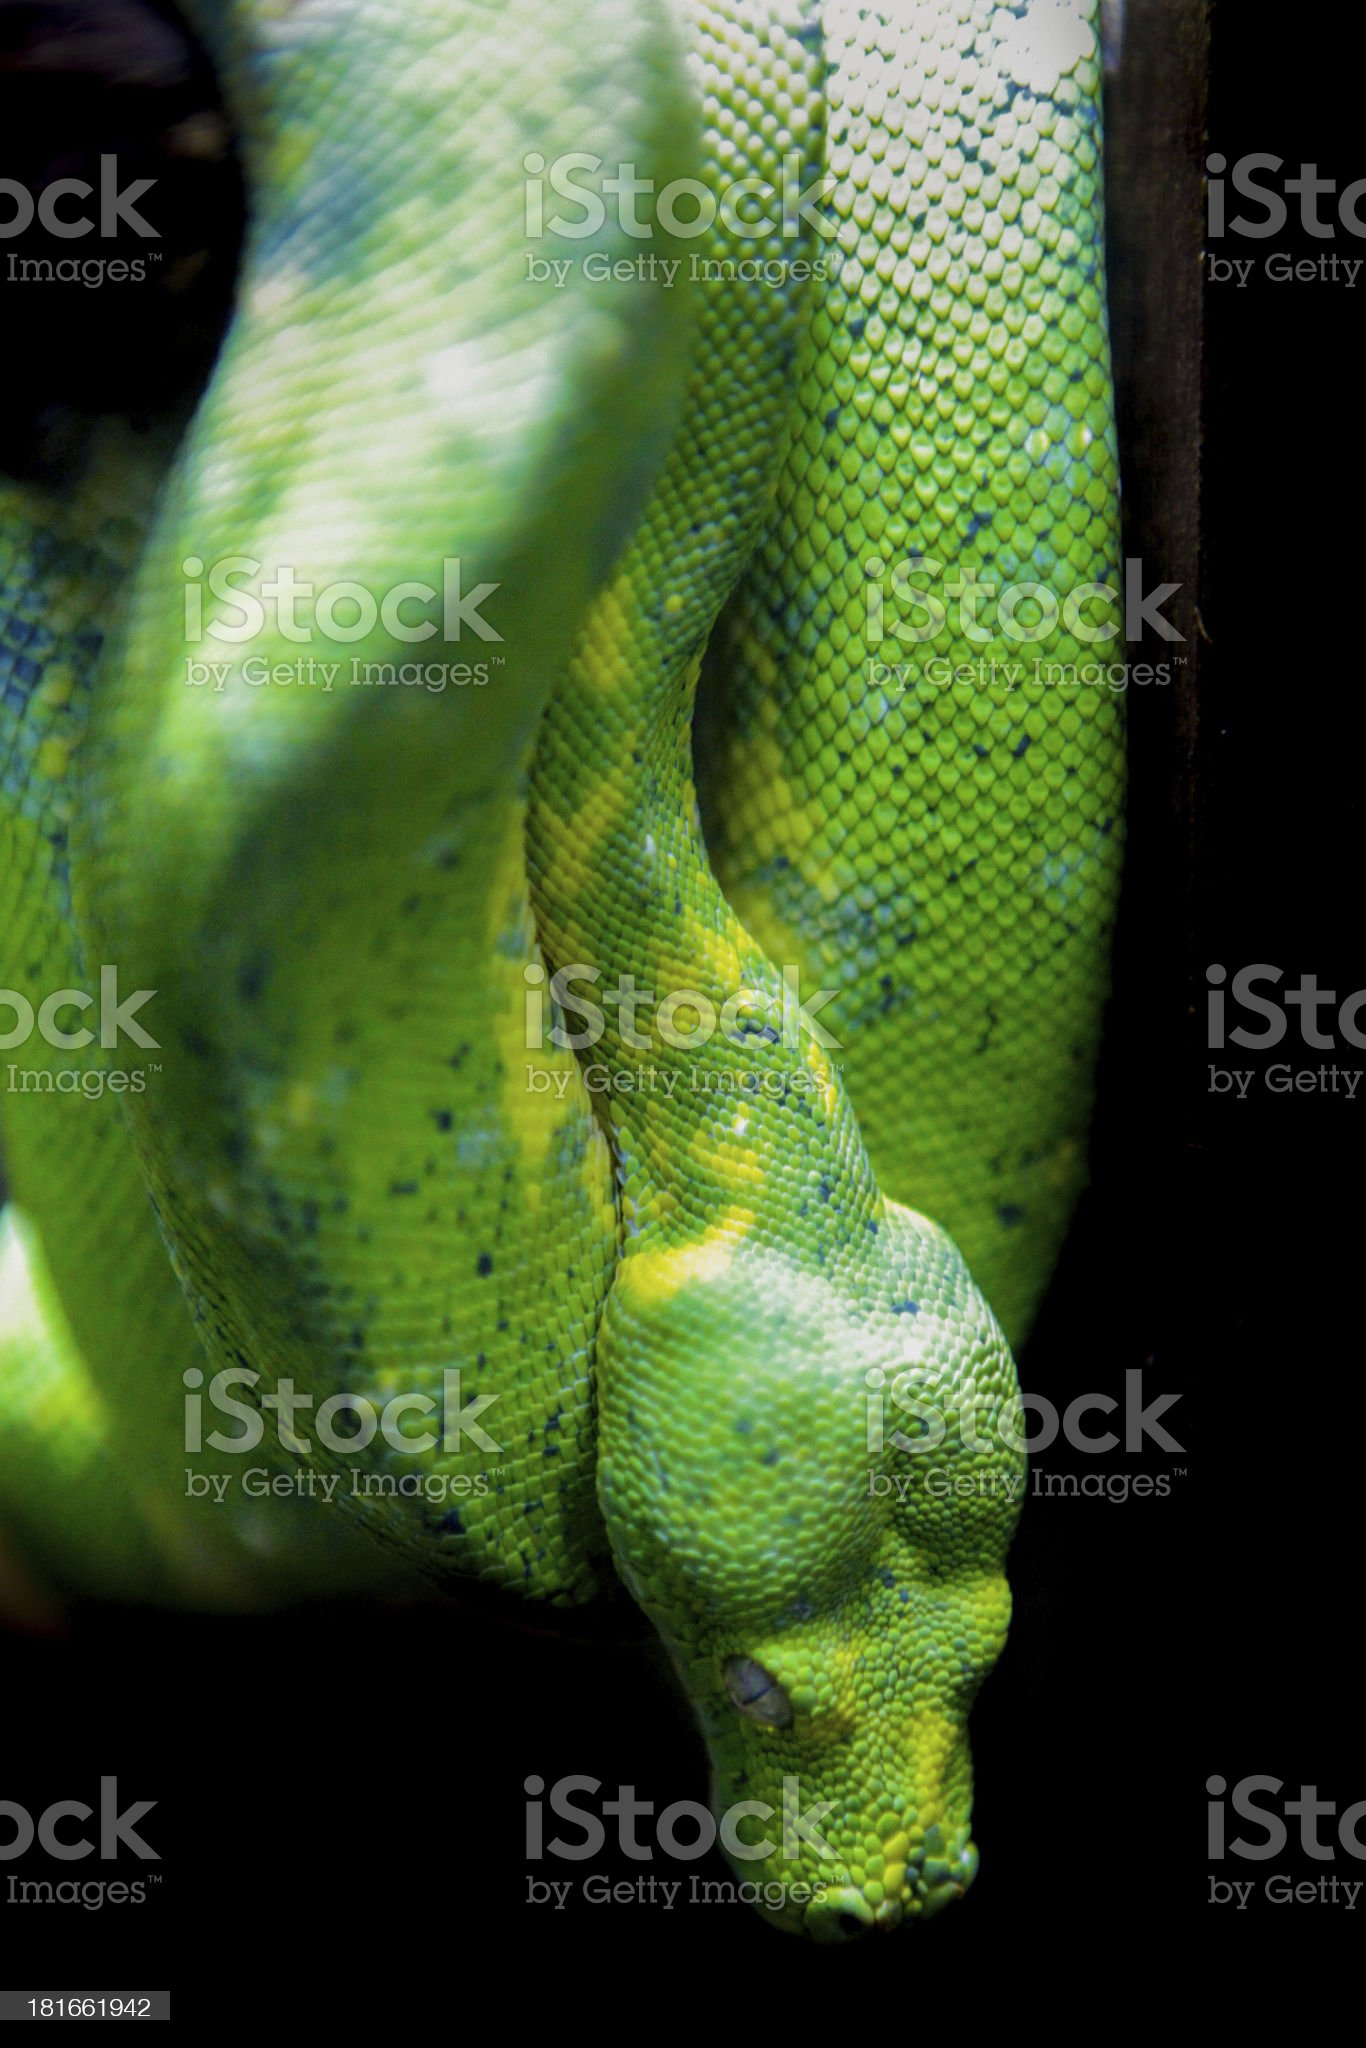 Green snake. royalty-free stock photo